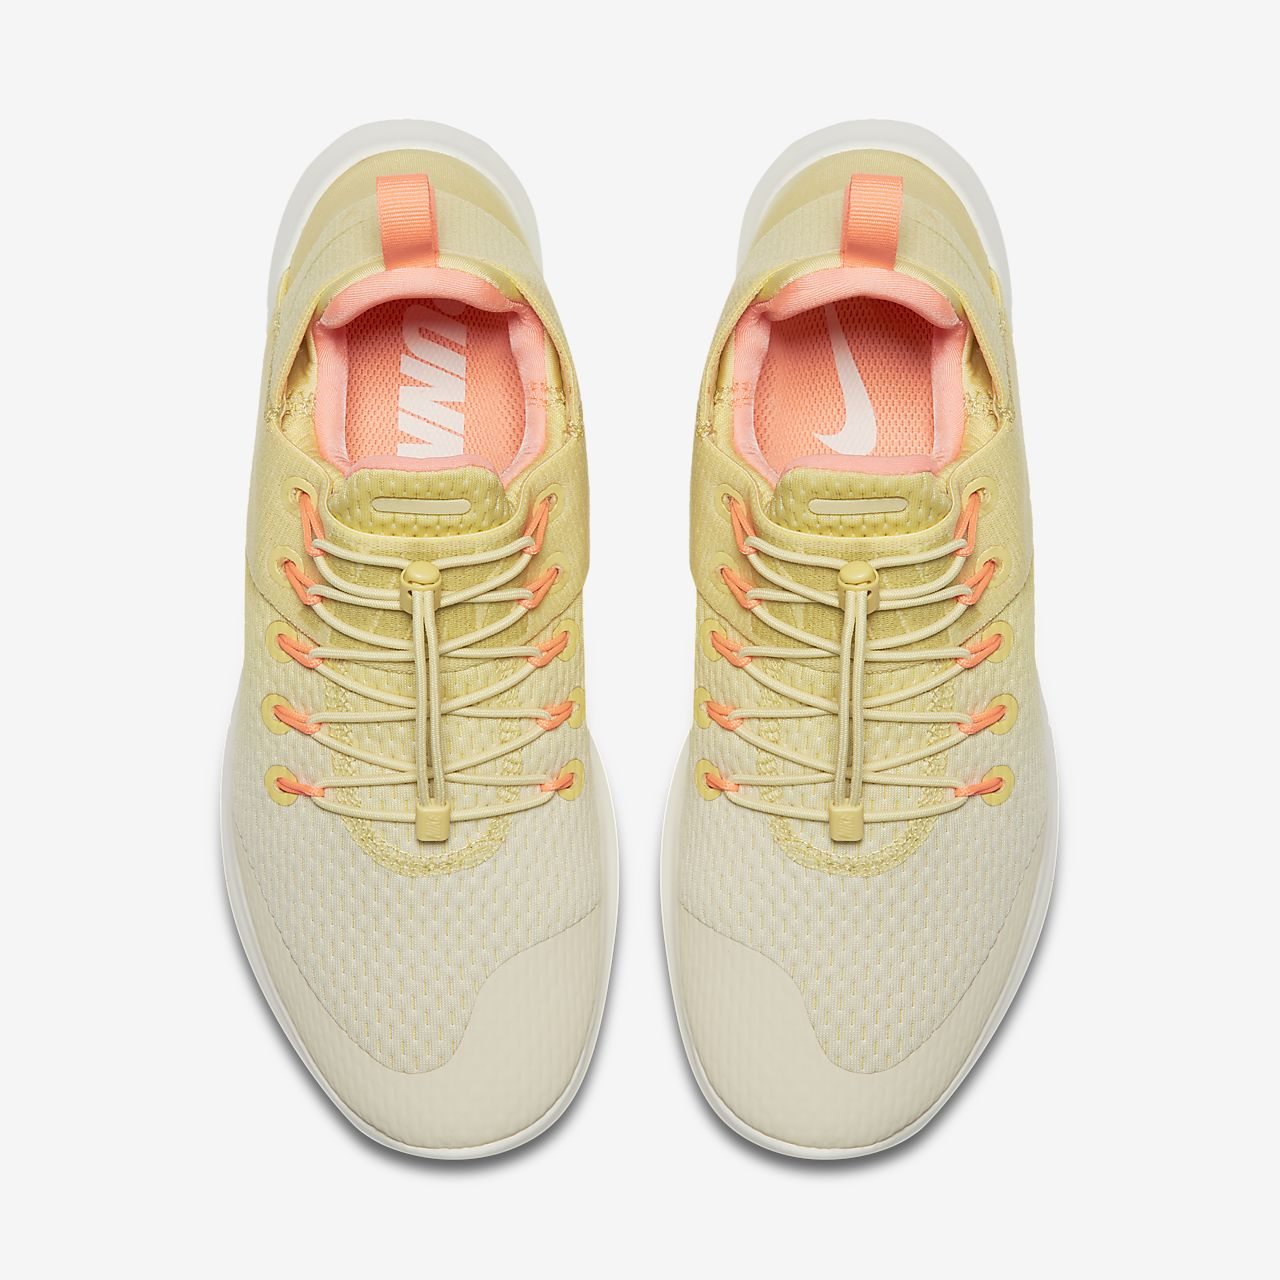 nike free rn commuter 2017 women's white nz